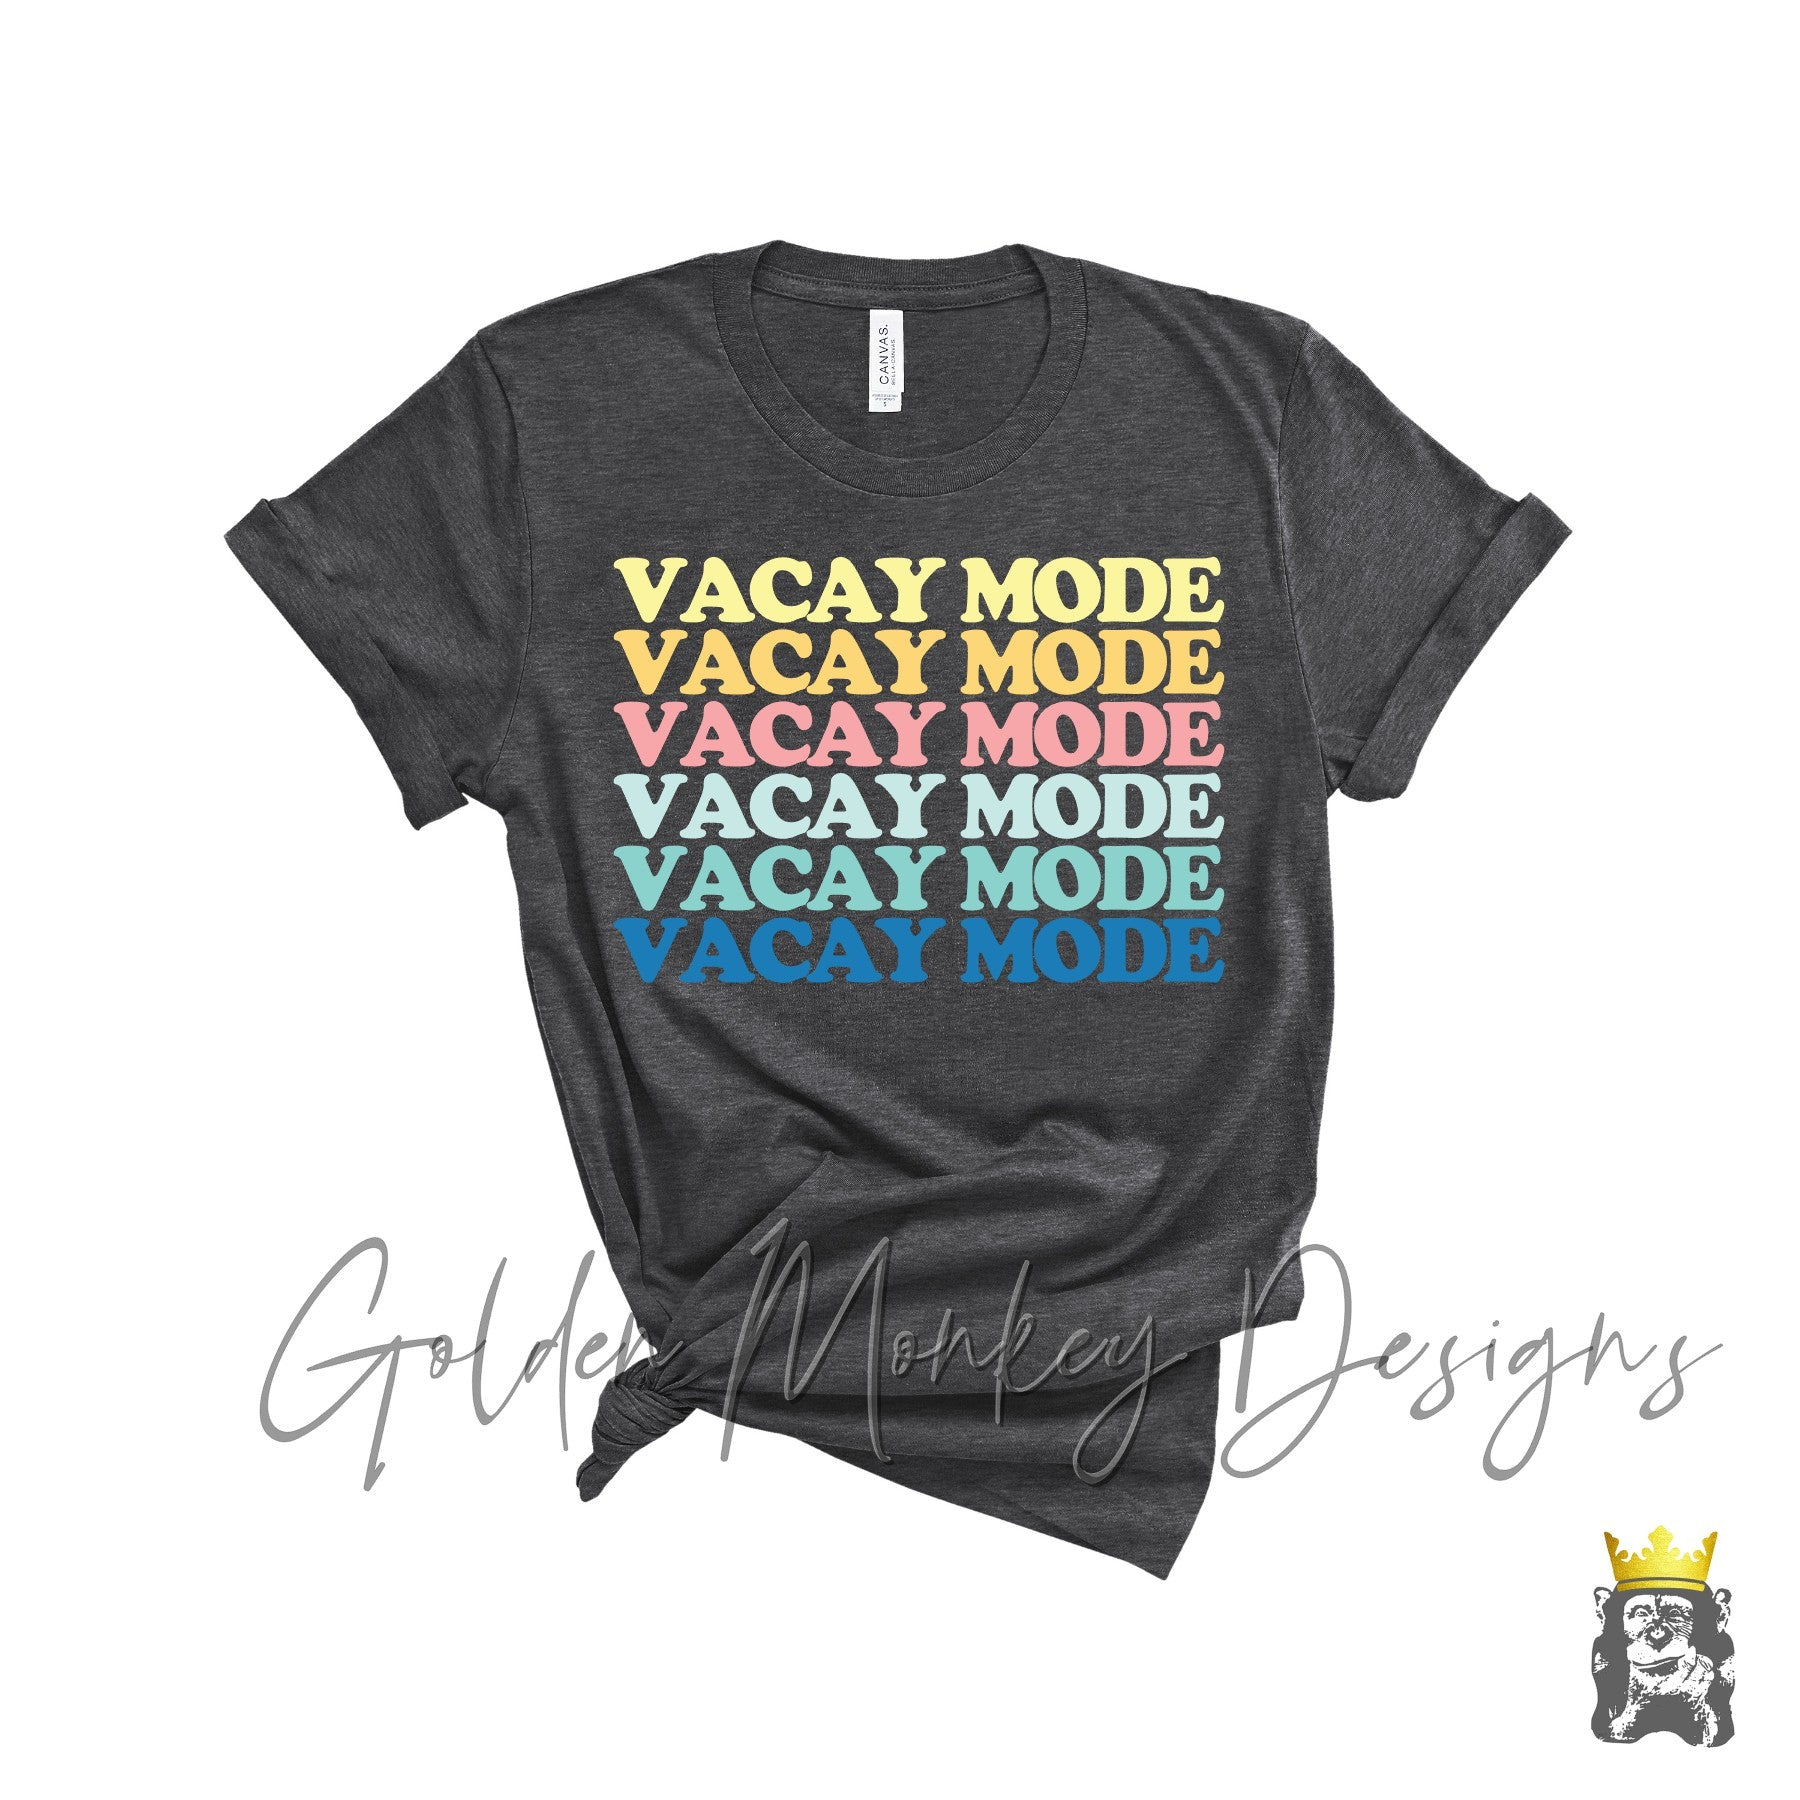 Vacay Mode T-shirt and Tank Options